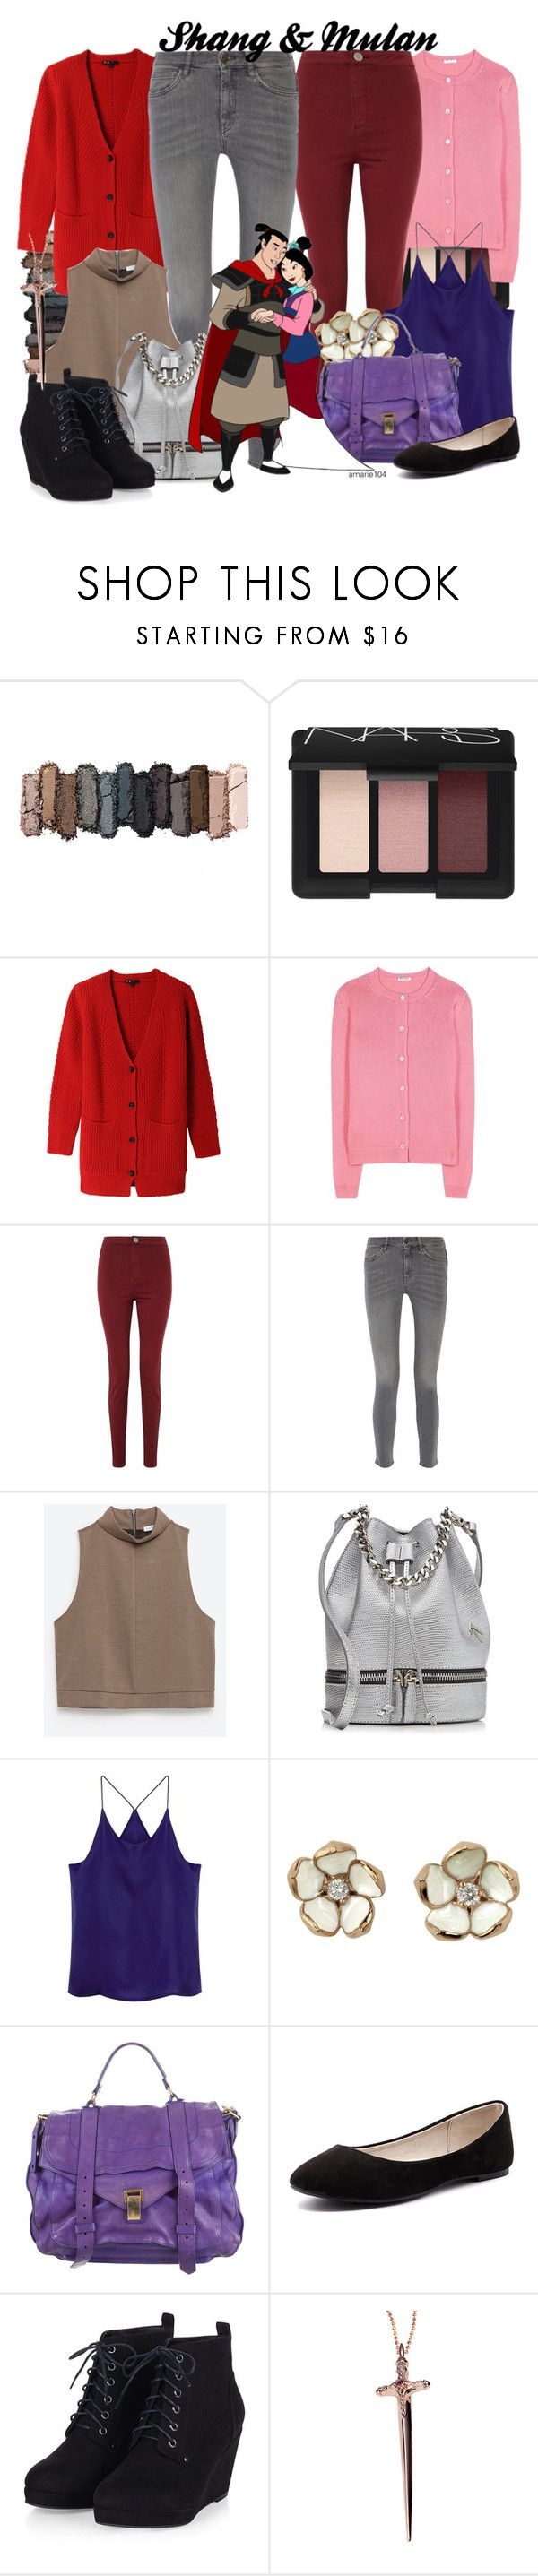 """Shang & Mulan"" by amarie104 ❤ liked on Polyvore featuring Urban Decay, NARS Cosmetics, Maje, Miu Miu, Miss Selfridge, M.i.h Jeans, Zara, MANU Atelier, Shaun Leane and Proenza Schouler"